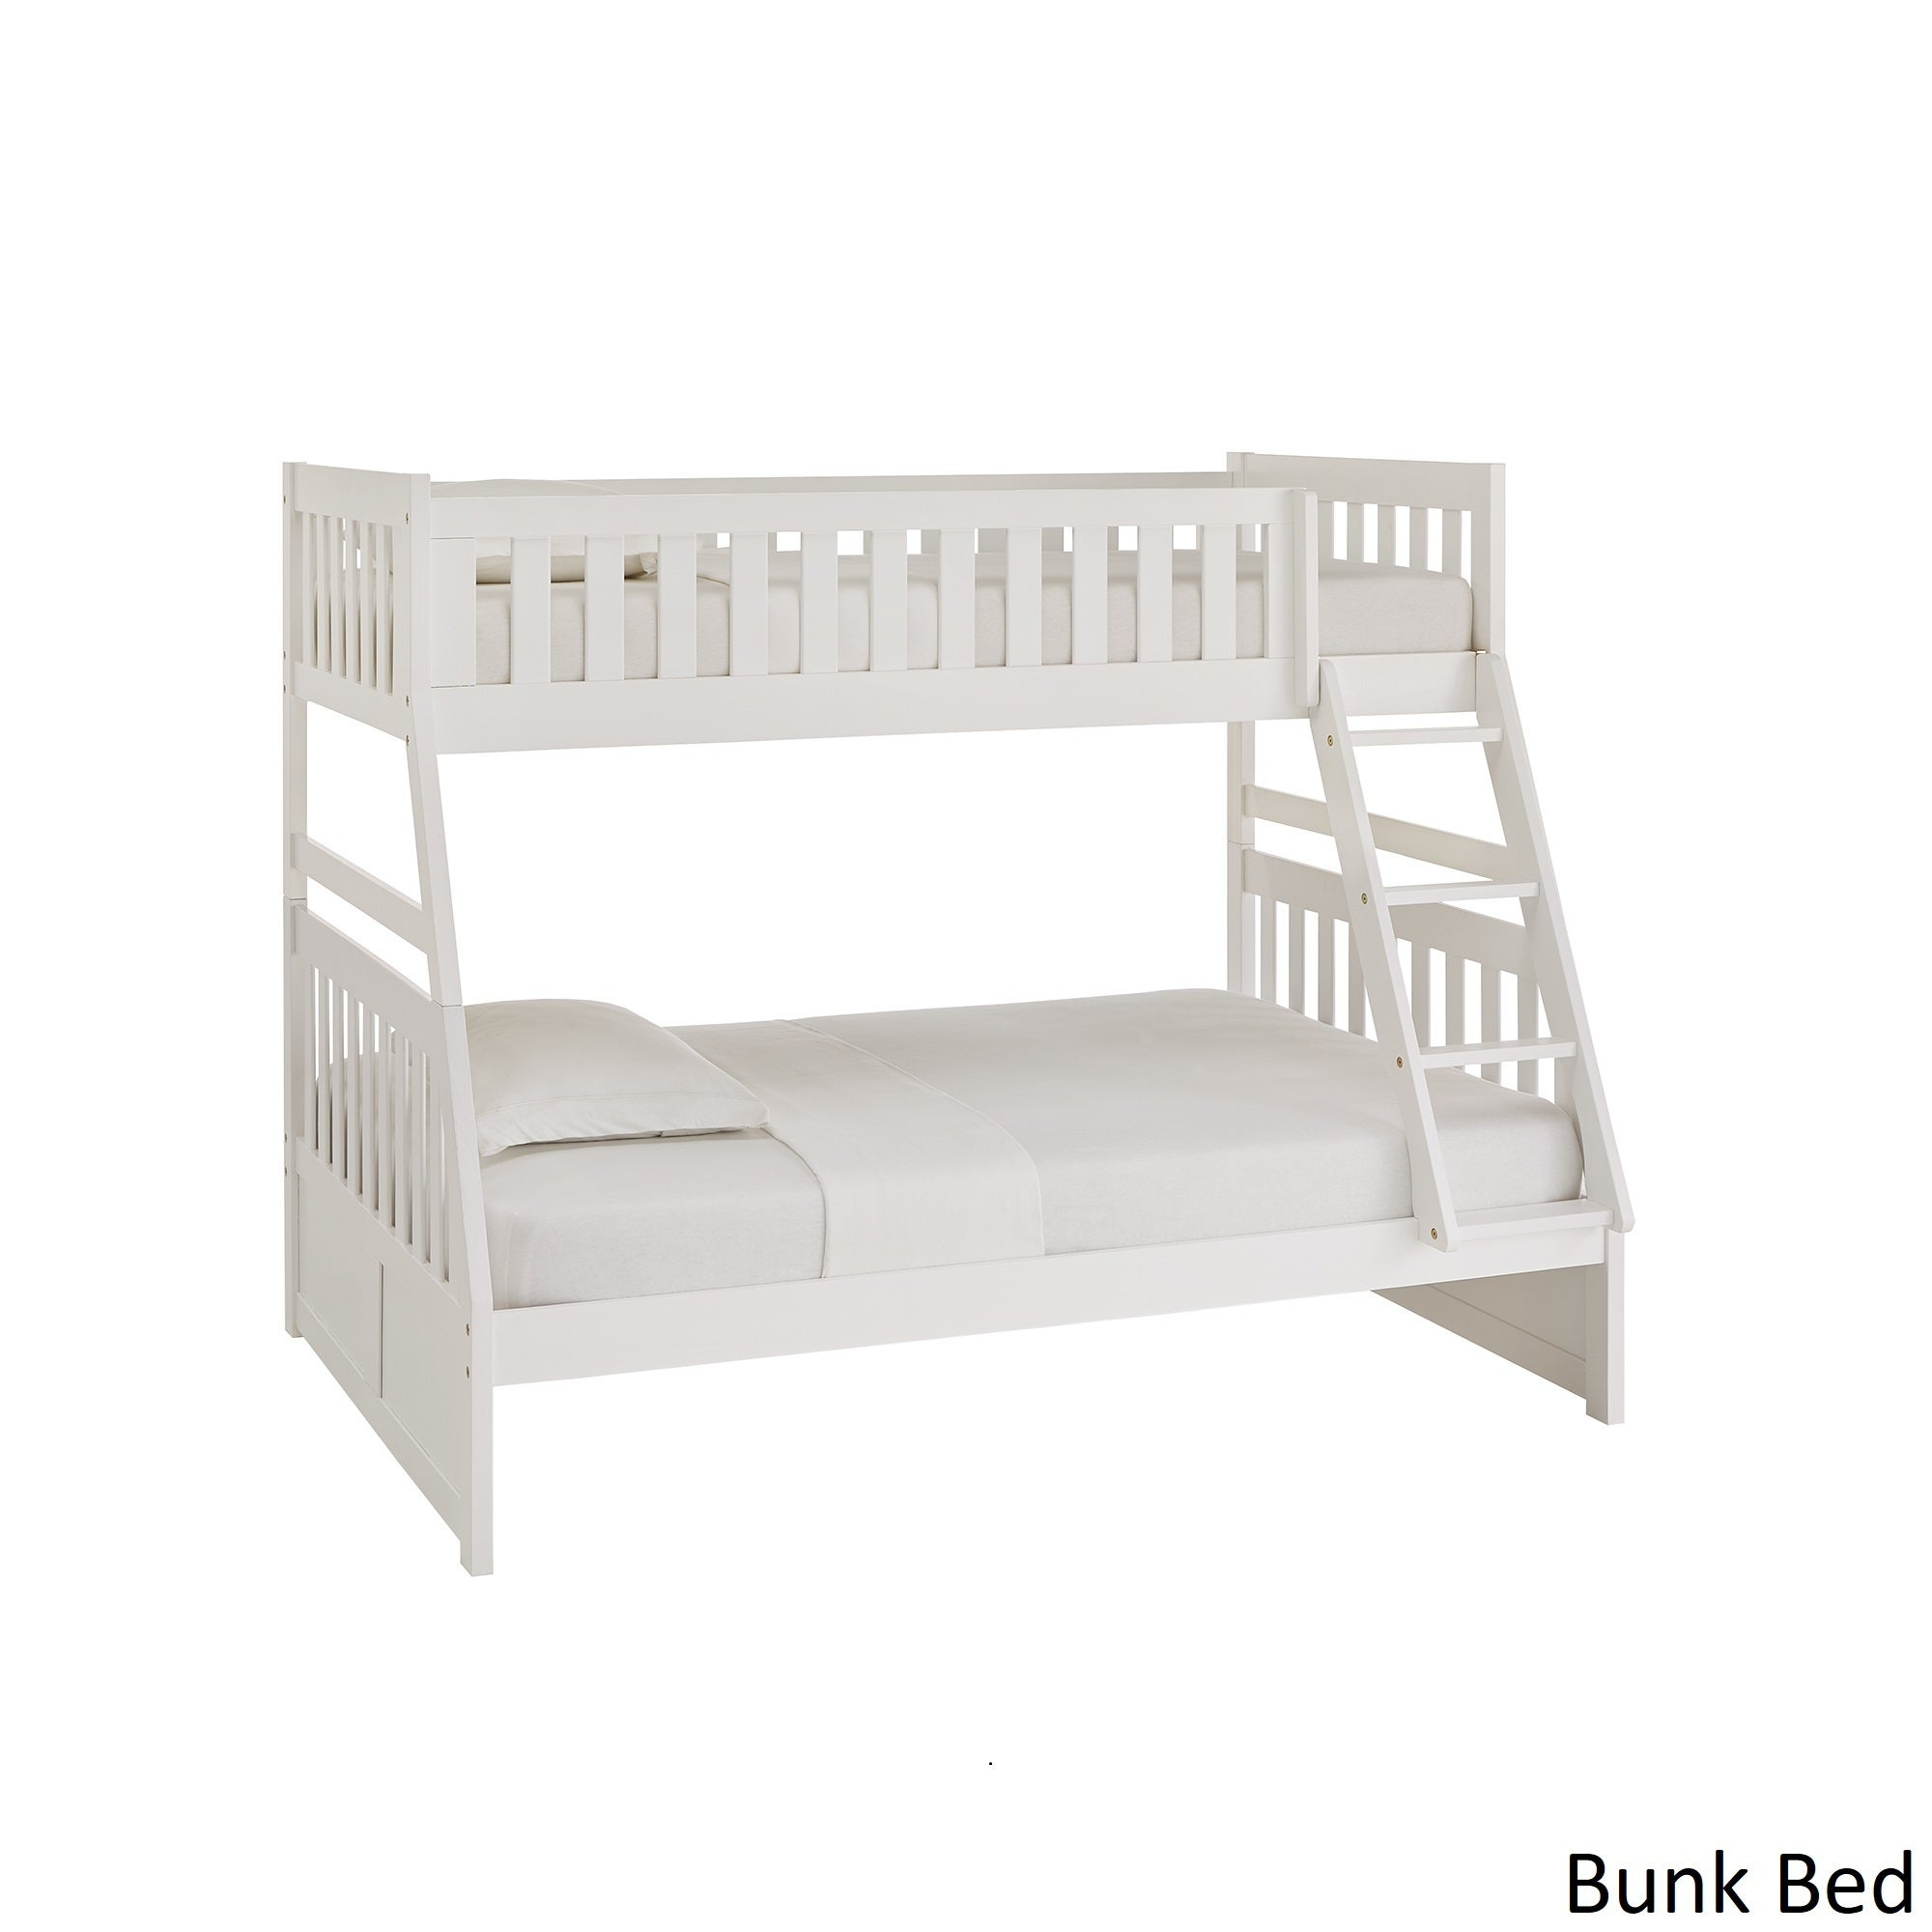 https://ak1.ostkcdn.com/images/products/19576787/Hunter-Twin-over-Full-White-Wood-Bunk-Bed-by-iNSPIRE-Q-Junior-717c981f-1141-4dcc-8673-13917fba51c4.jpg